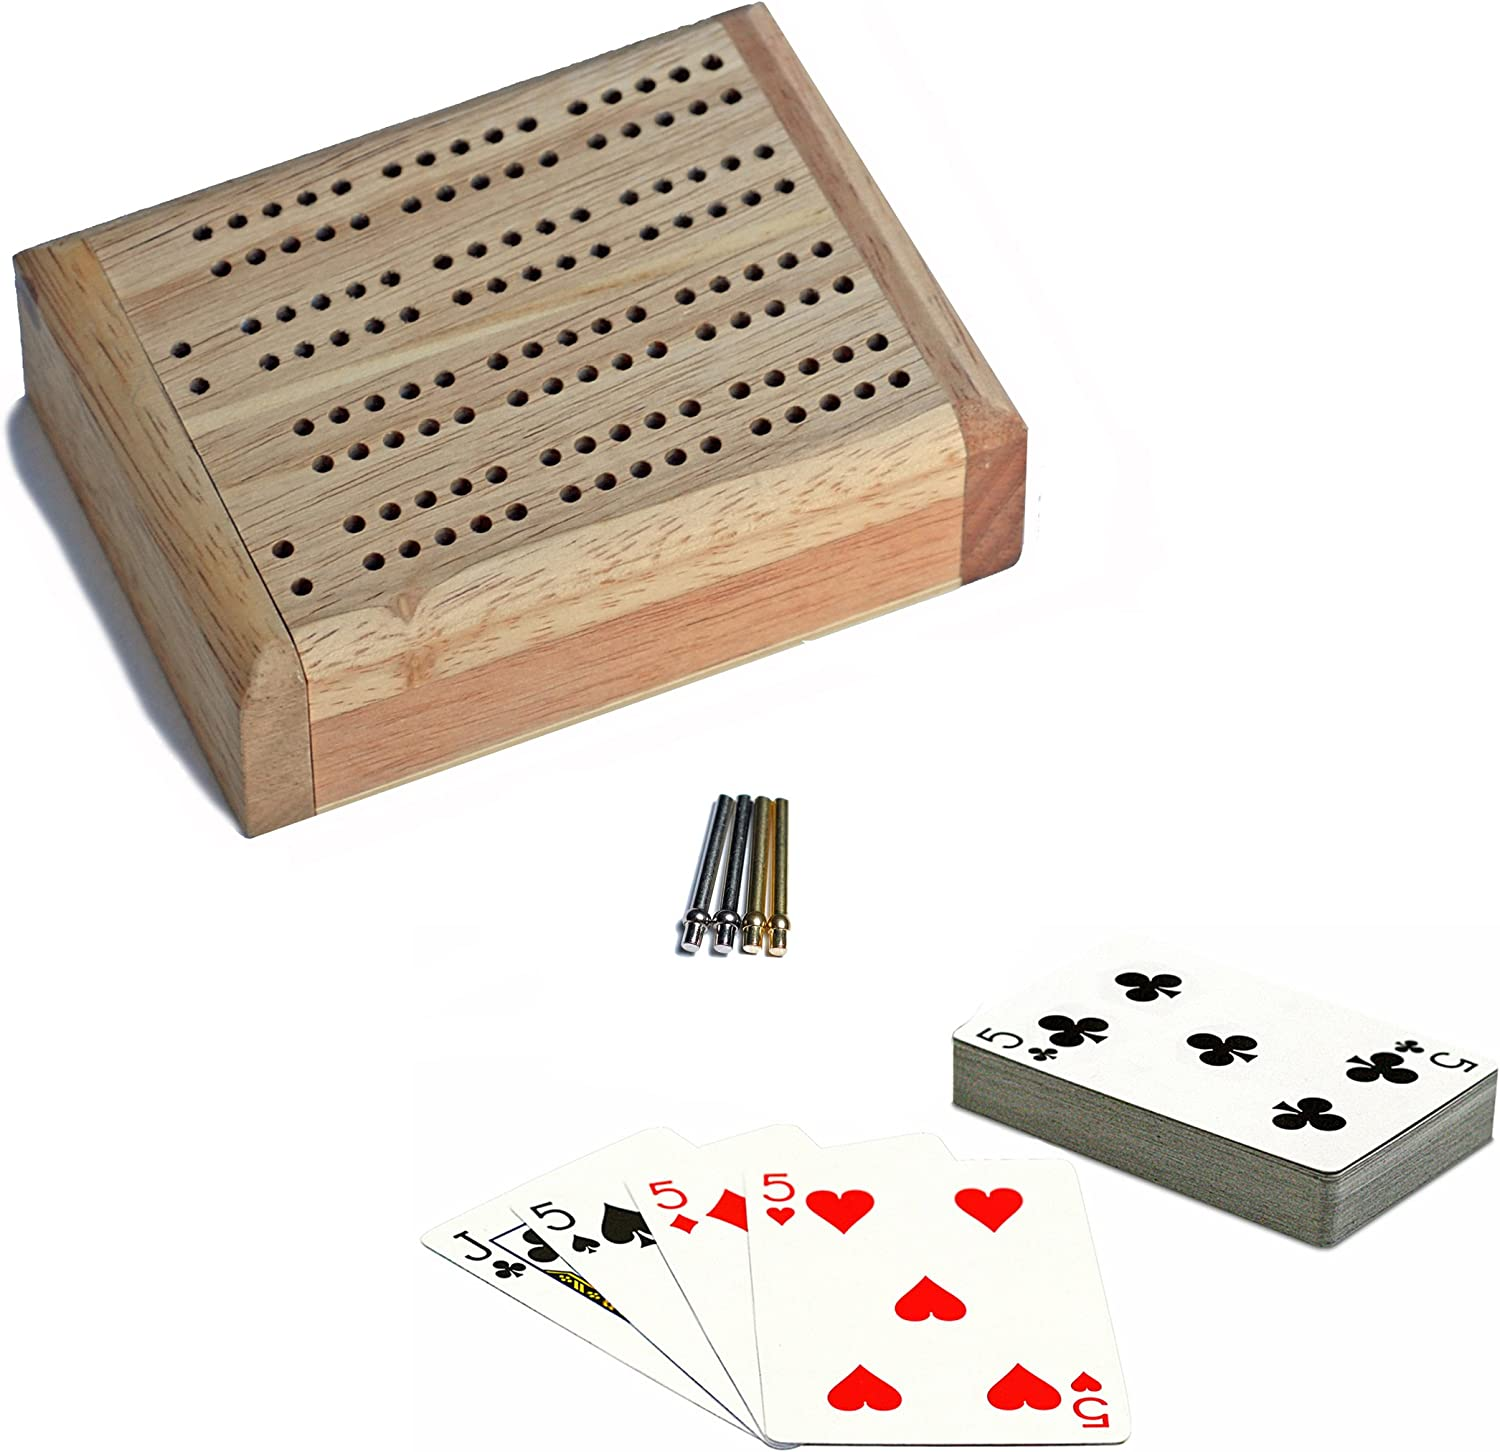 Wood Folding 2 Track Board with Metal Pegs WE Games Mini Cribbage Set